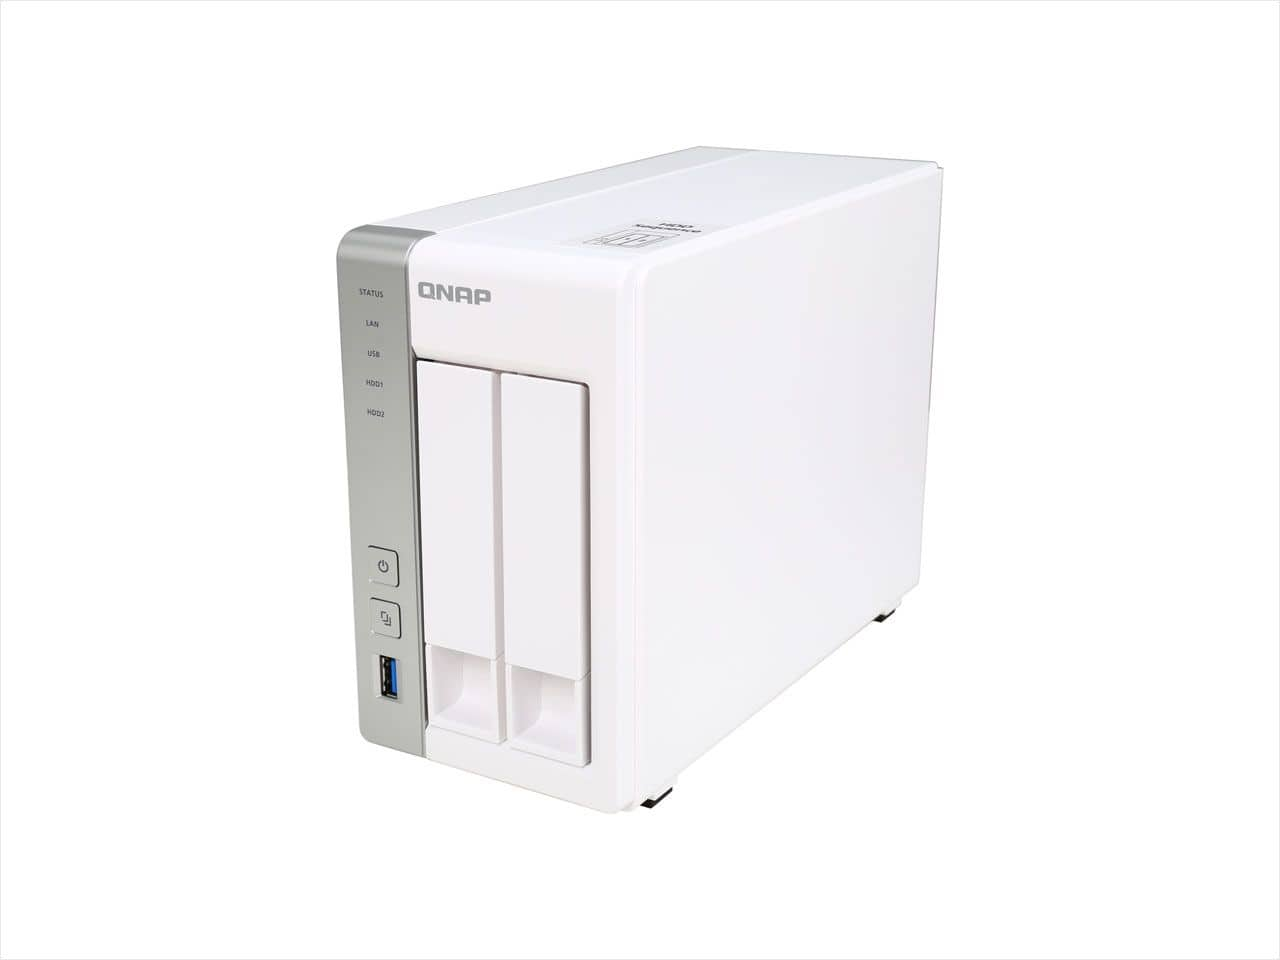 QNAP TS-231 2-Bay Personal Cloud NAS Diskless $150@NF